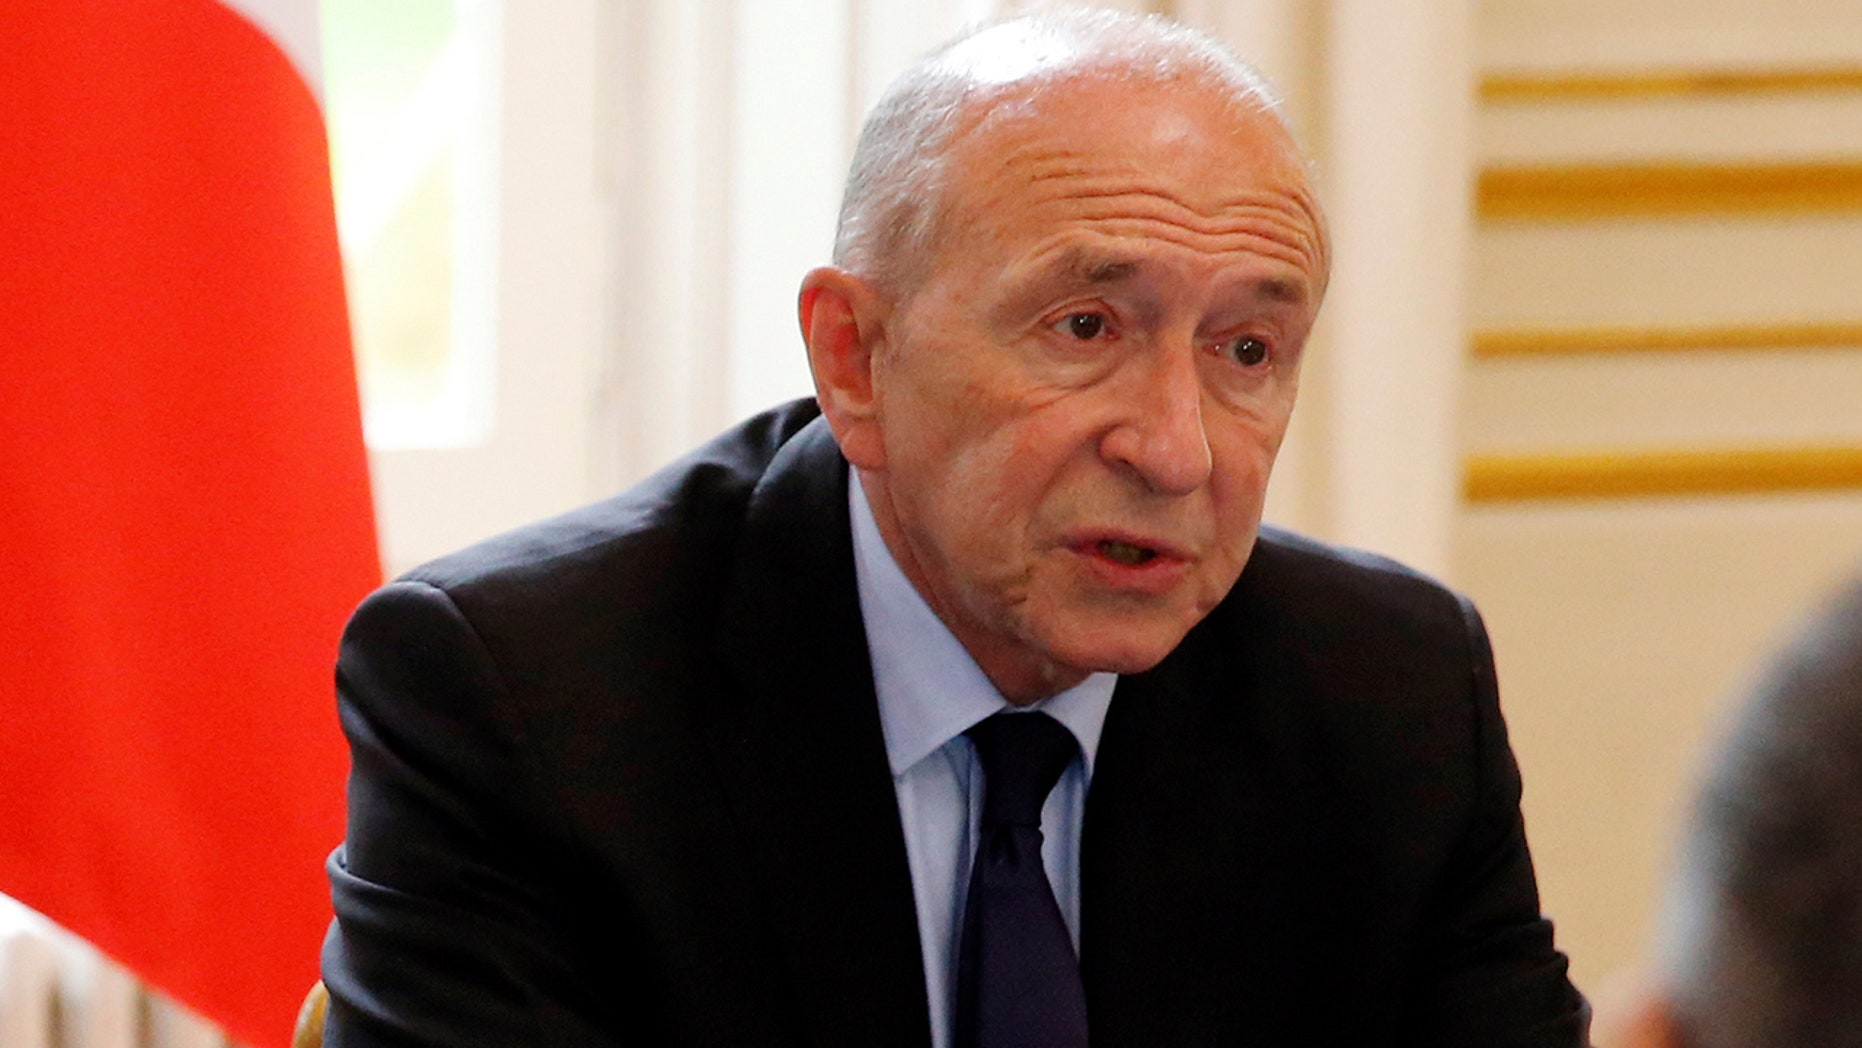 French Interior Minister Gerard Collomb announced Thursday that French authorities had thwarted a possible attack using ricin or explosives, arresting two brothers.